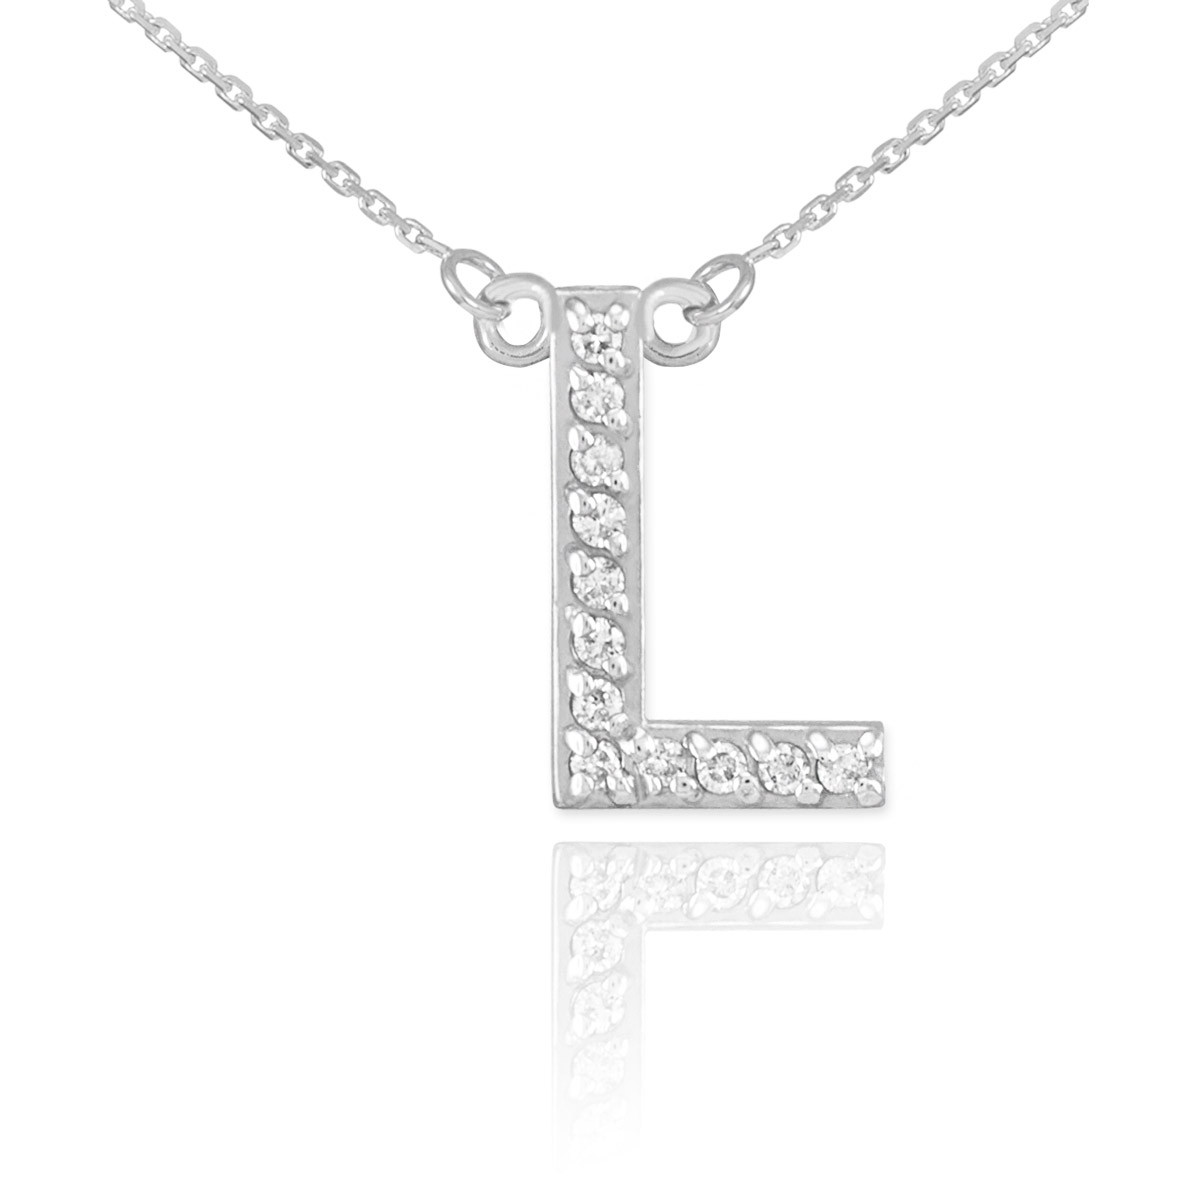 Diamond letter l pendant necklace in 9ct white gold gold boutique gb57405w 593 instock httpsgoldboutiquediamond letter l pendant necklace in white gold gb57405w gold boutique mozeypictures Choice Image